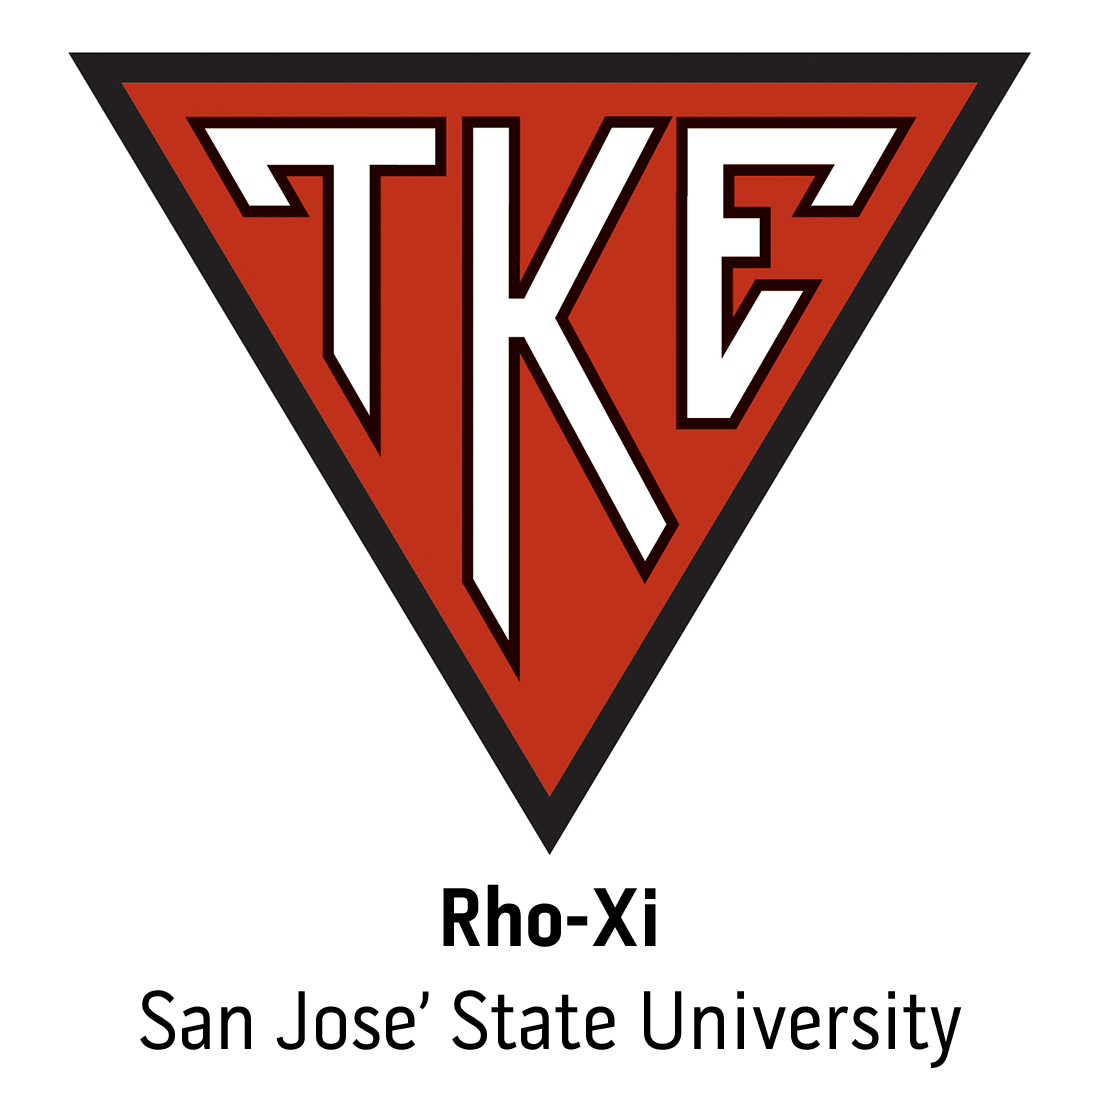 Rho-Xi Chapter at San Jose' State University